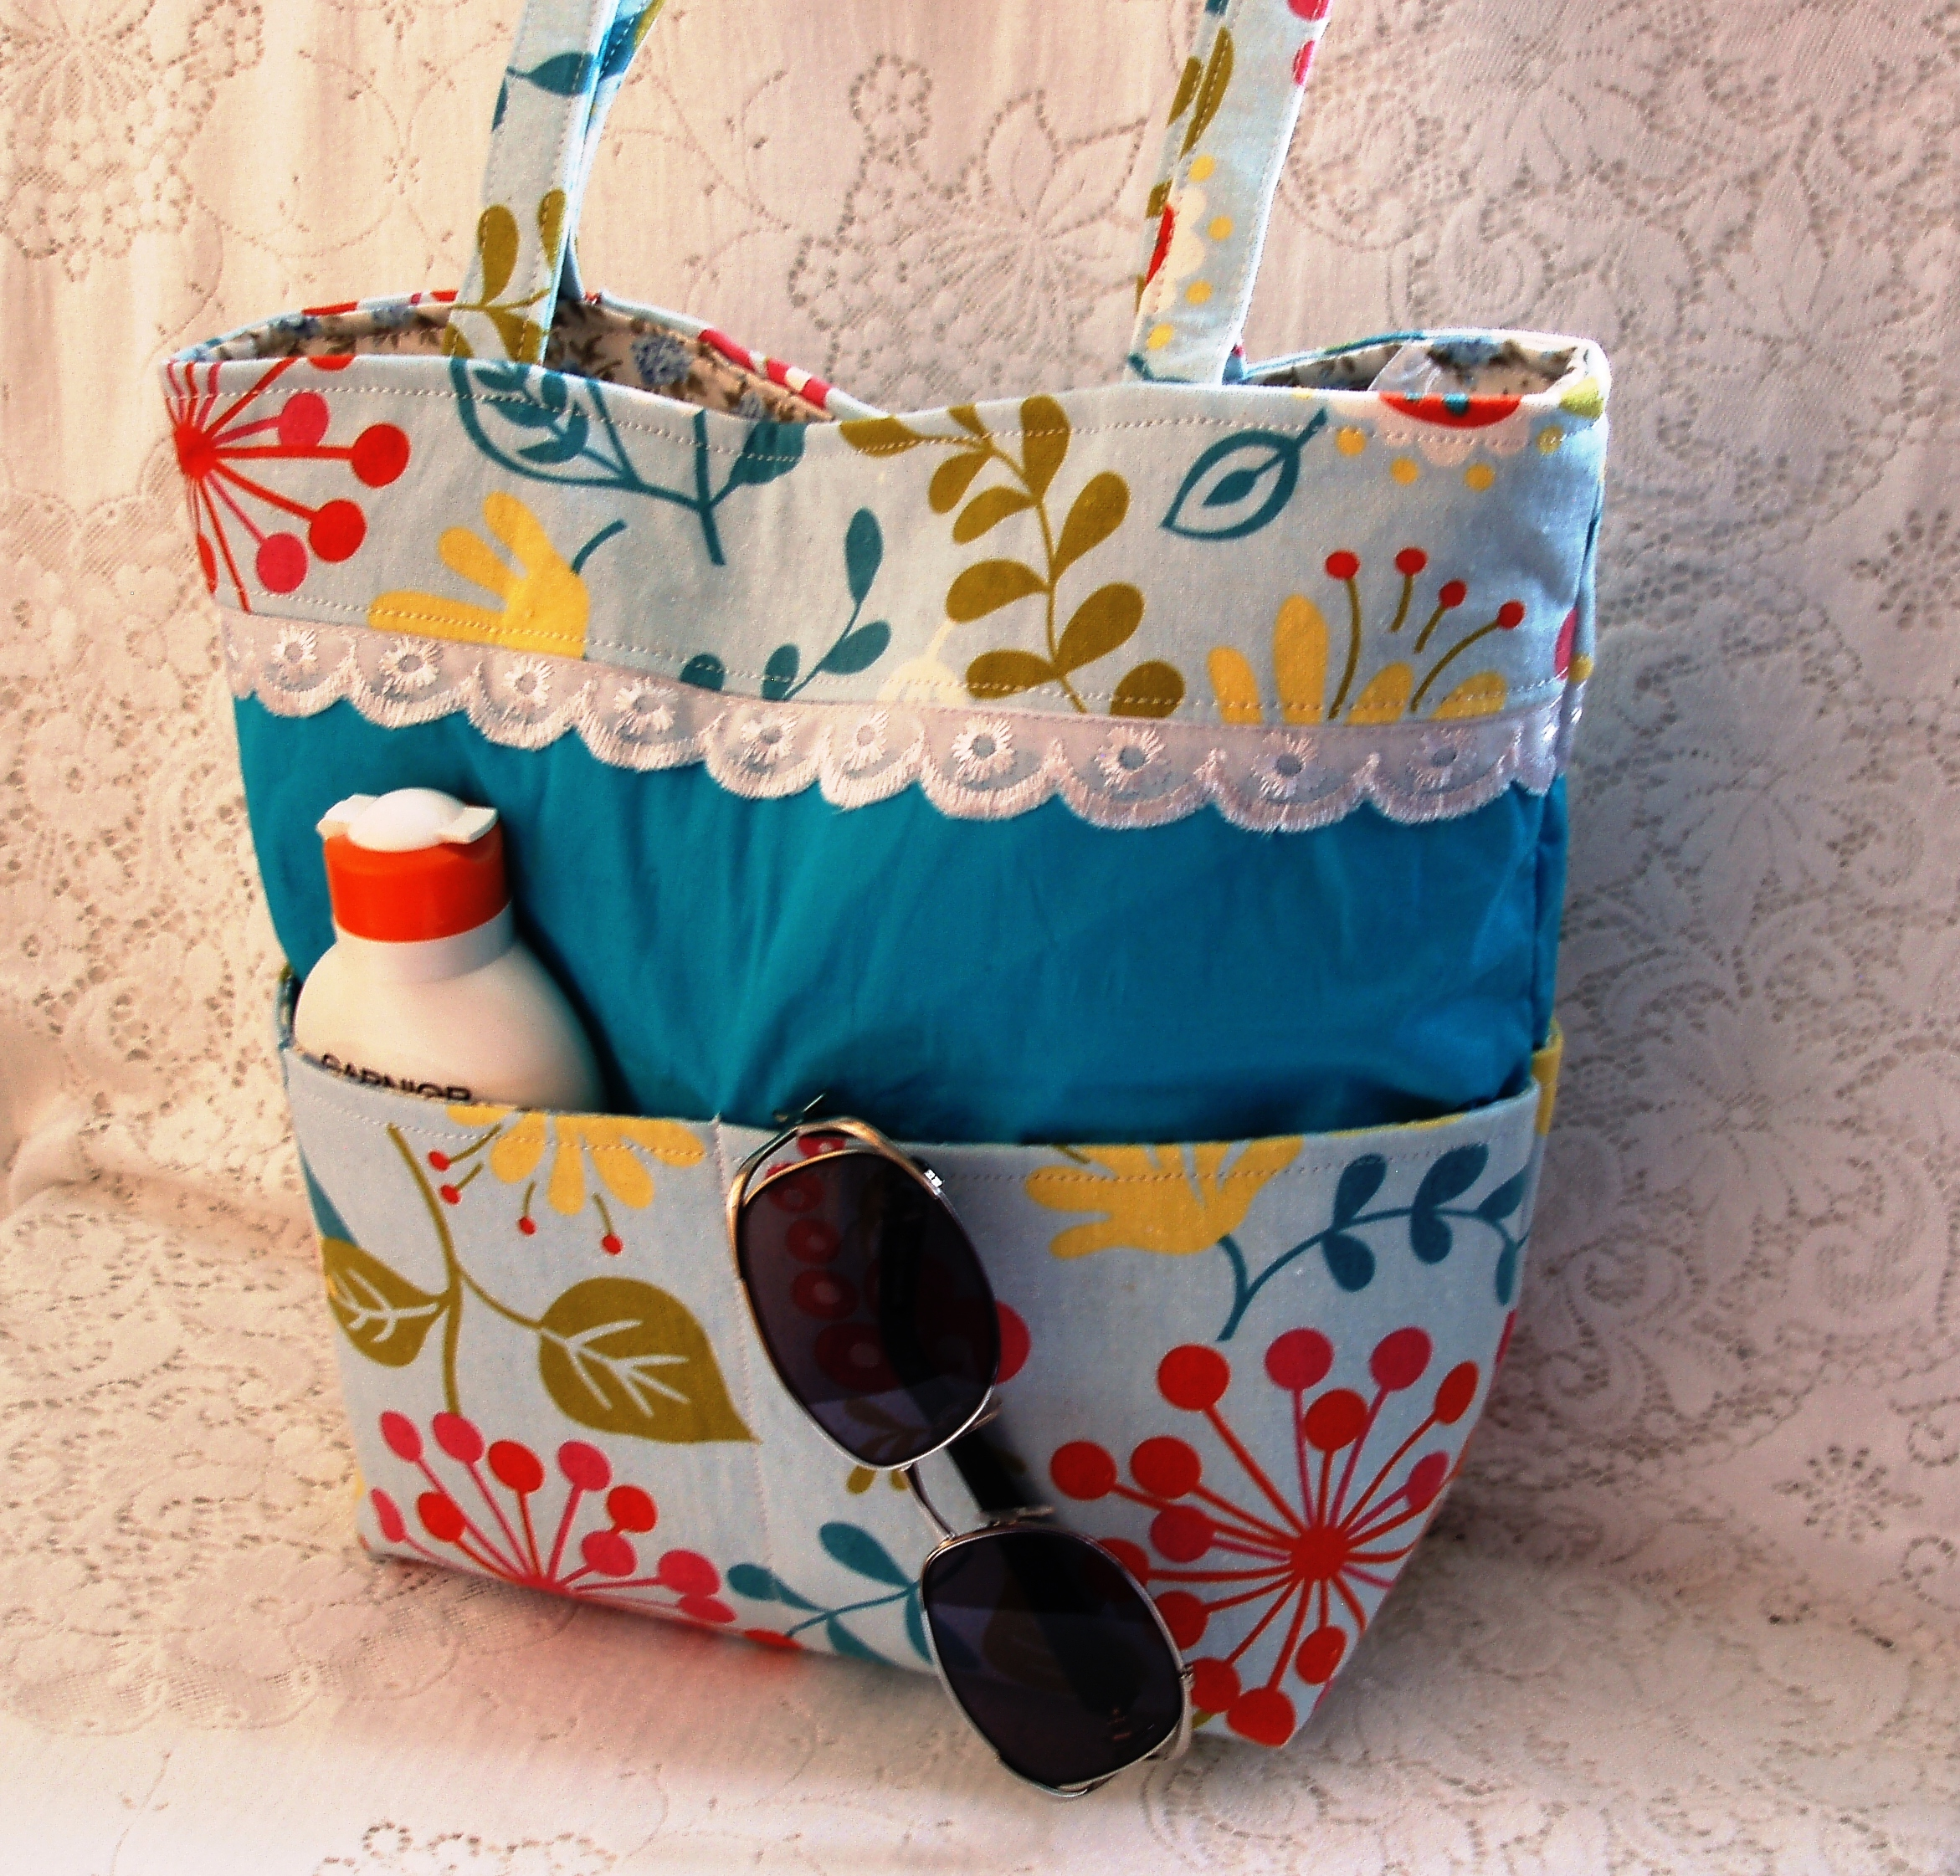 Handmade Beach Bag | The Crafty Network